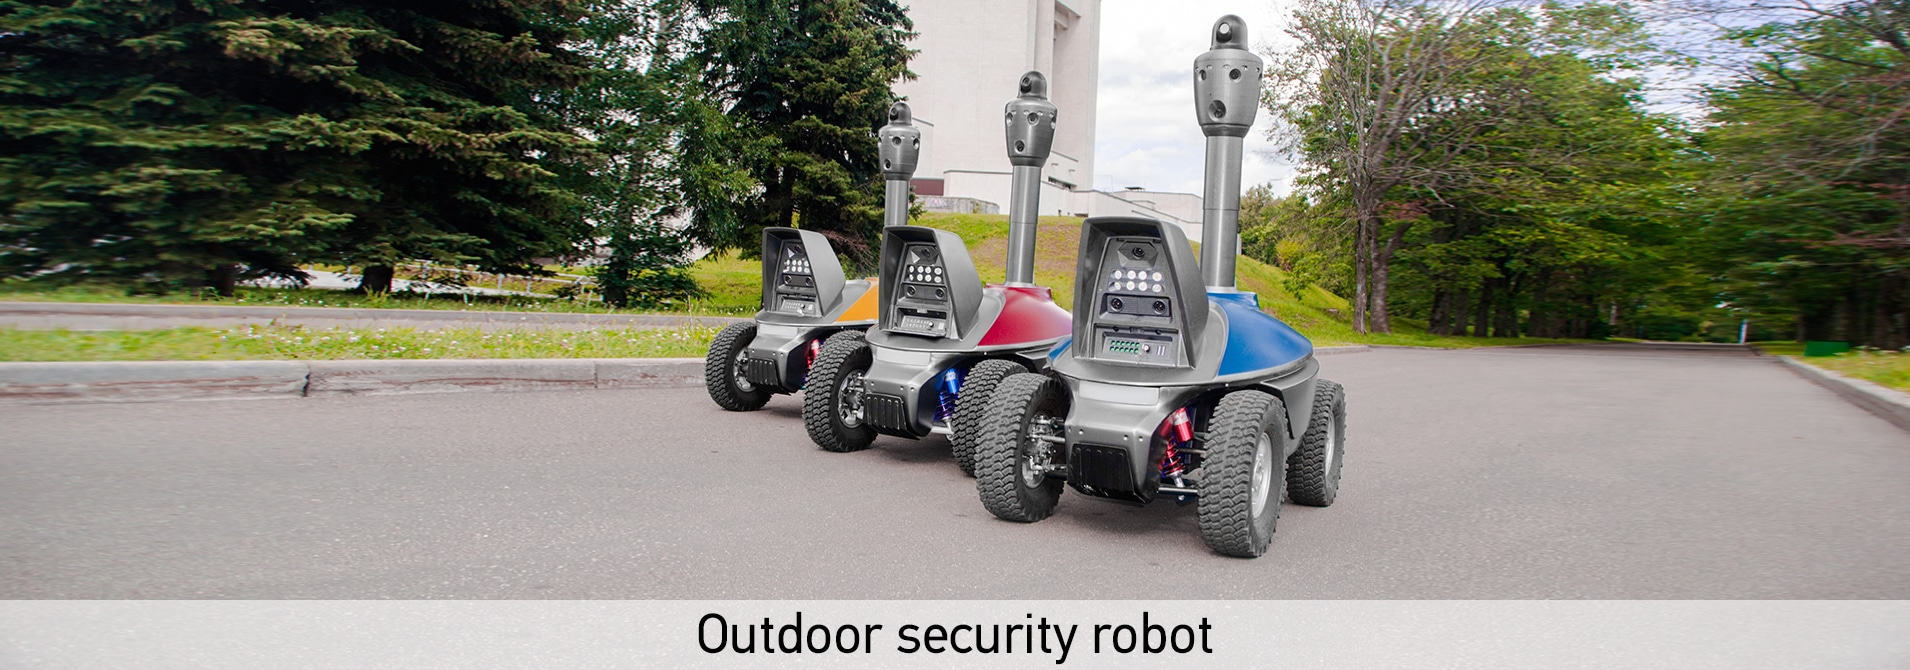 Outdoor security robot